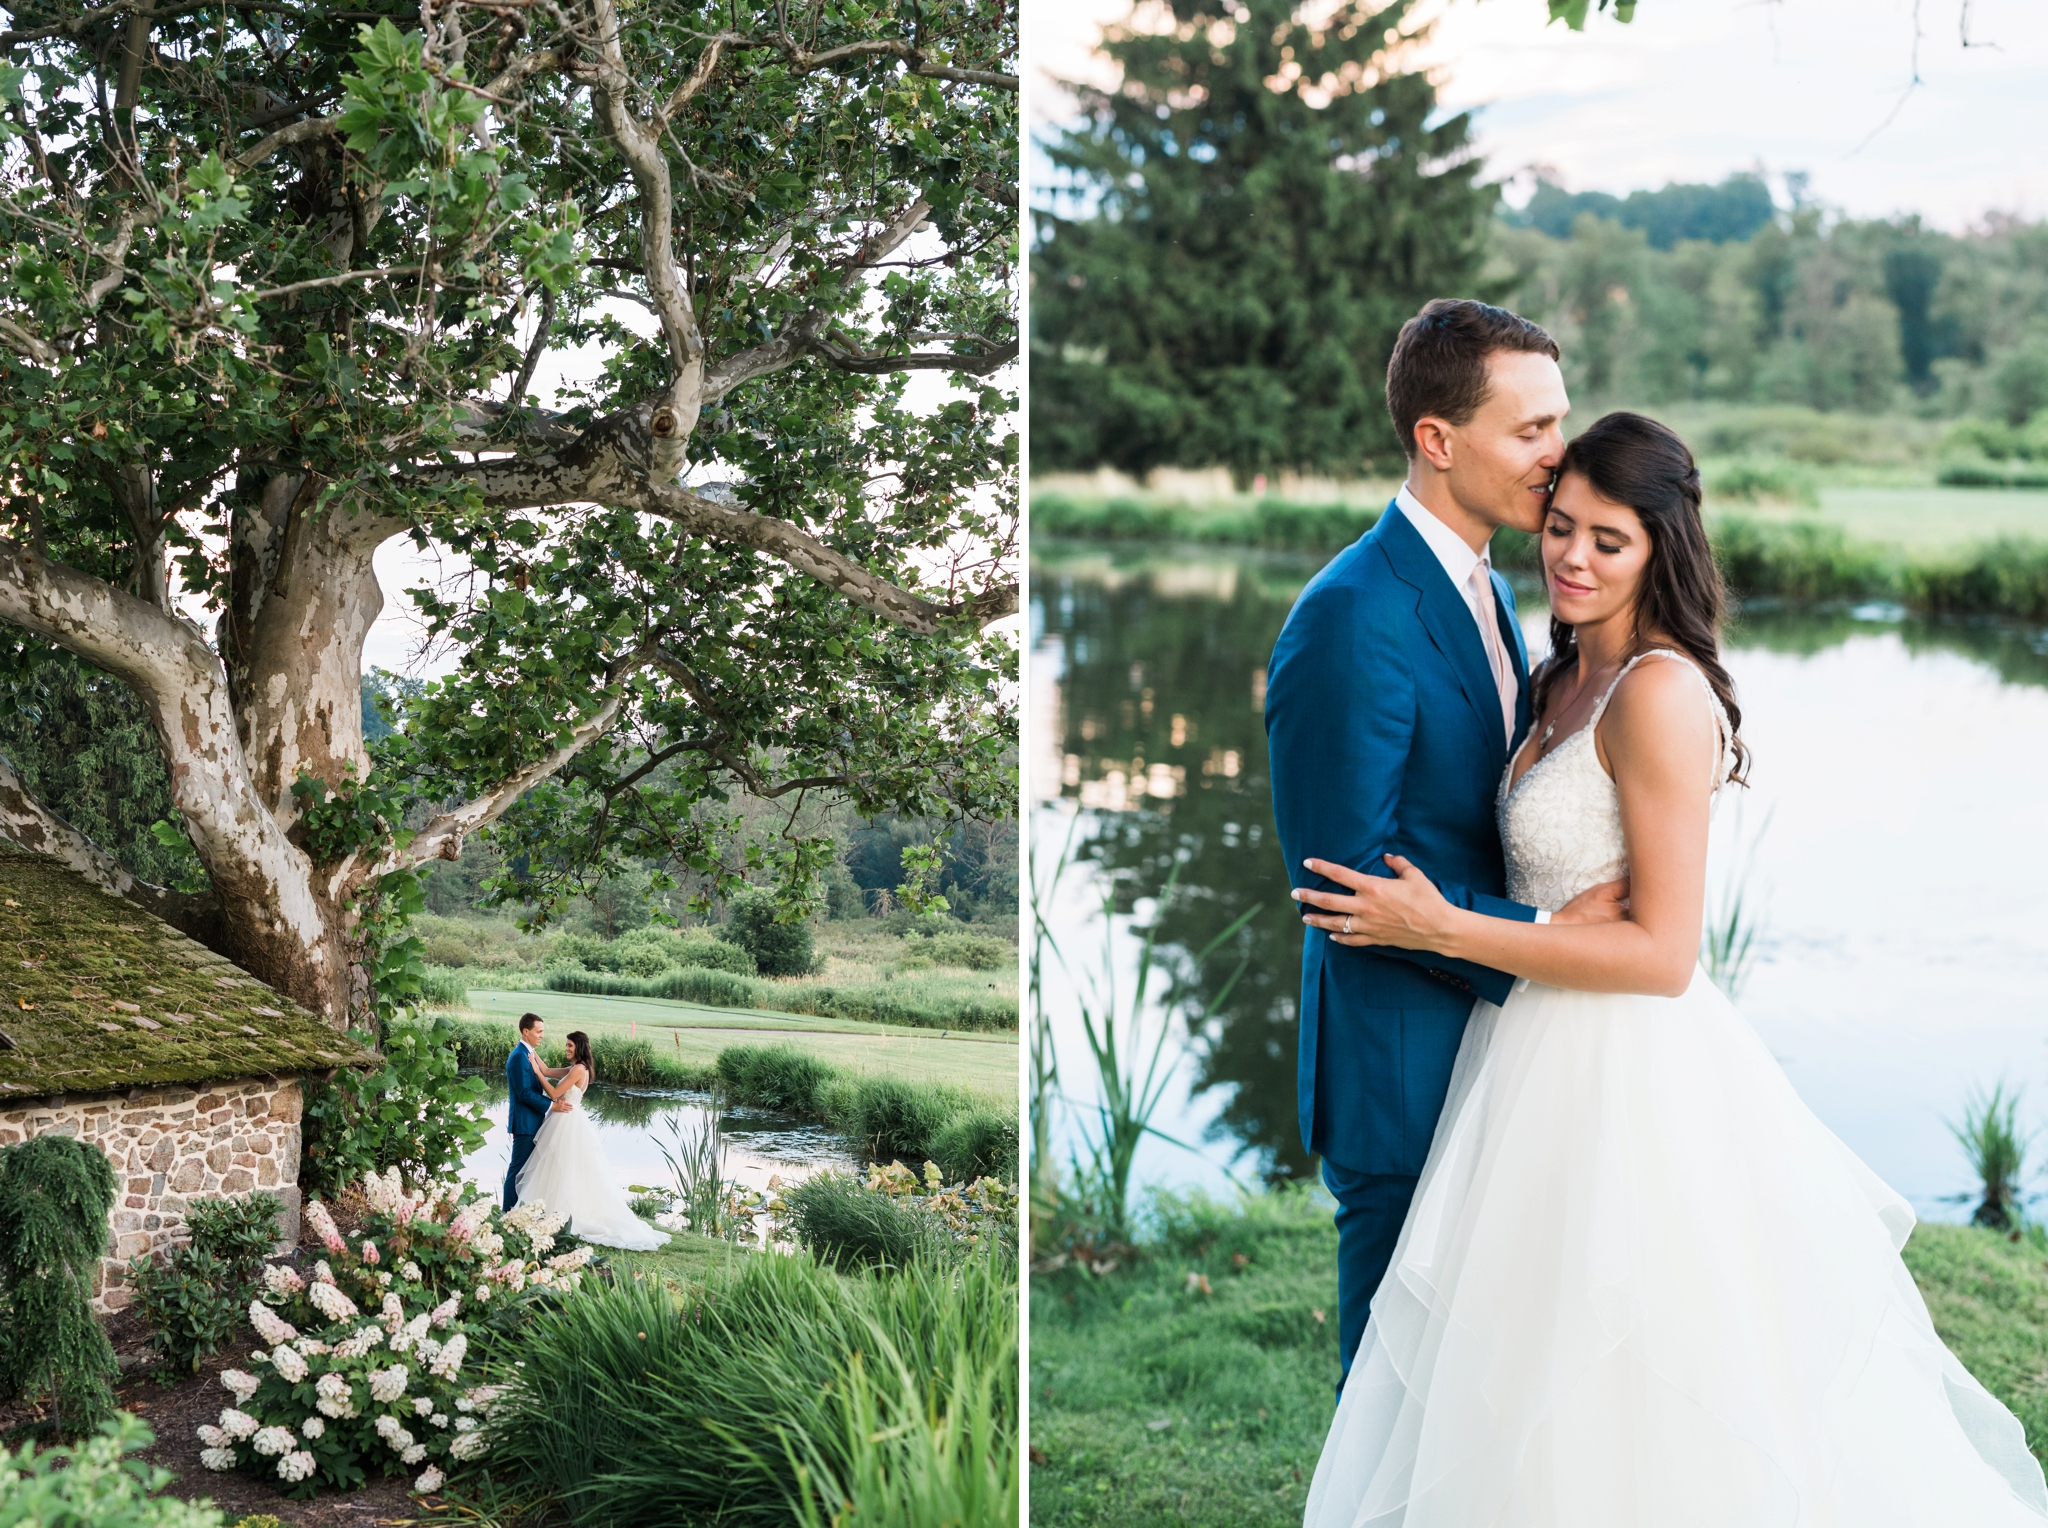 Emily Grace Photography, Lancaster PA Wedding Photographer, French Creek Golf Club Wedding Venue, Elverson PA Wedding Venue, Fairytale Wedding Theme, Central PA Wedding Photographer